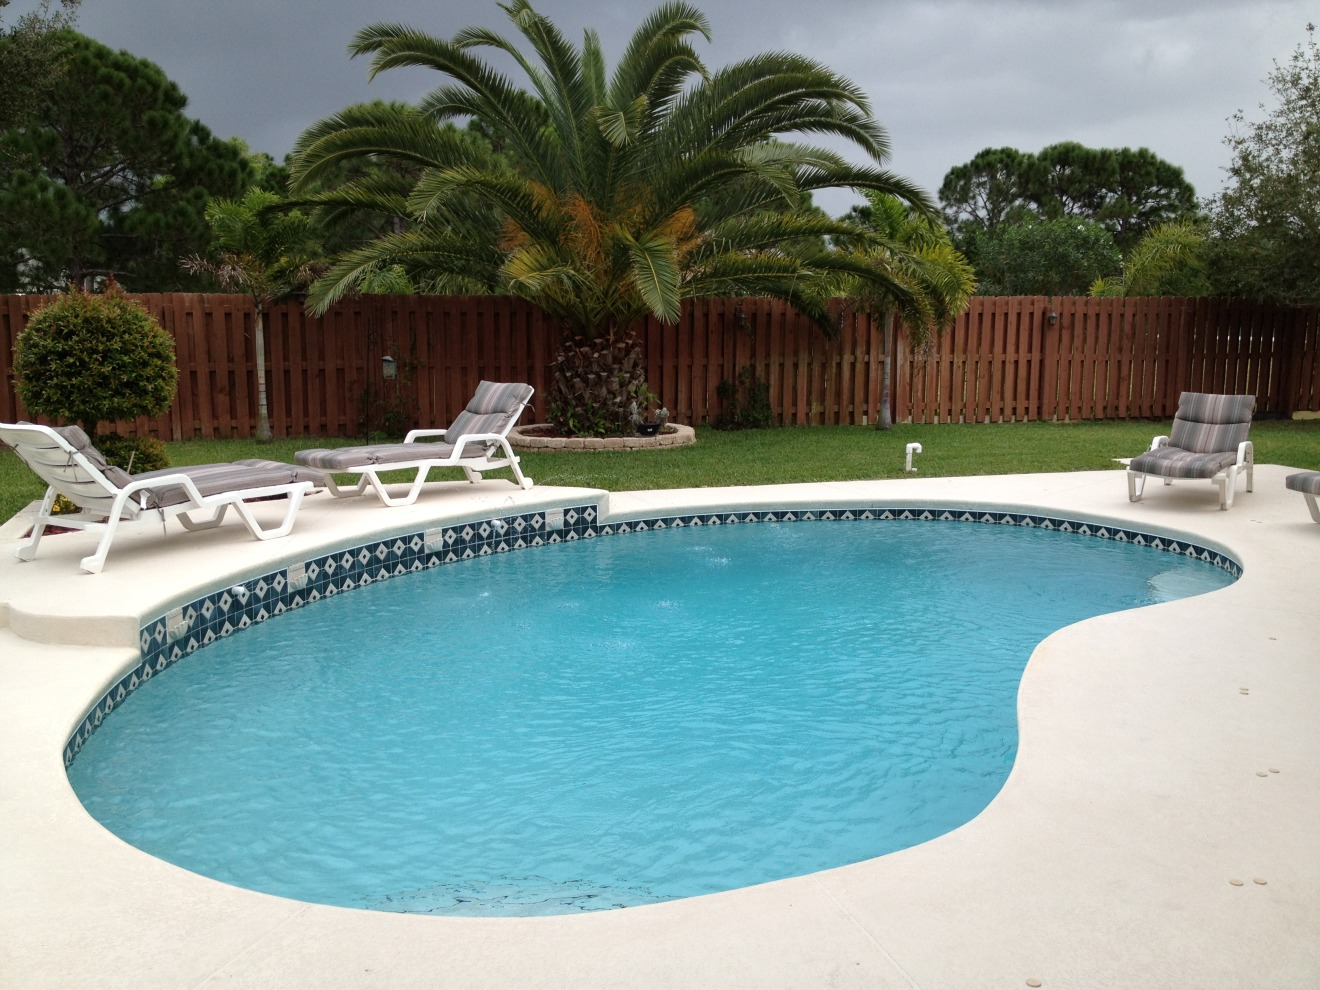 Pool home in St. James